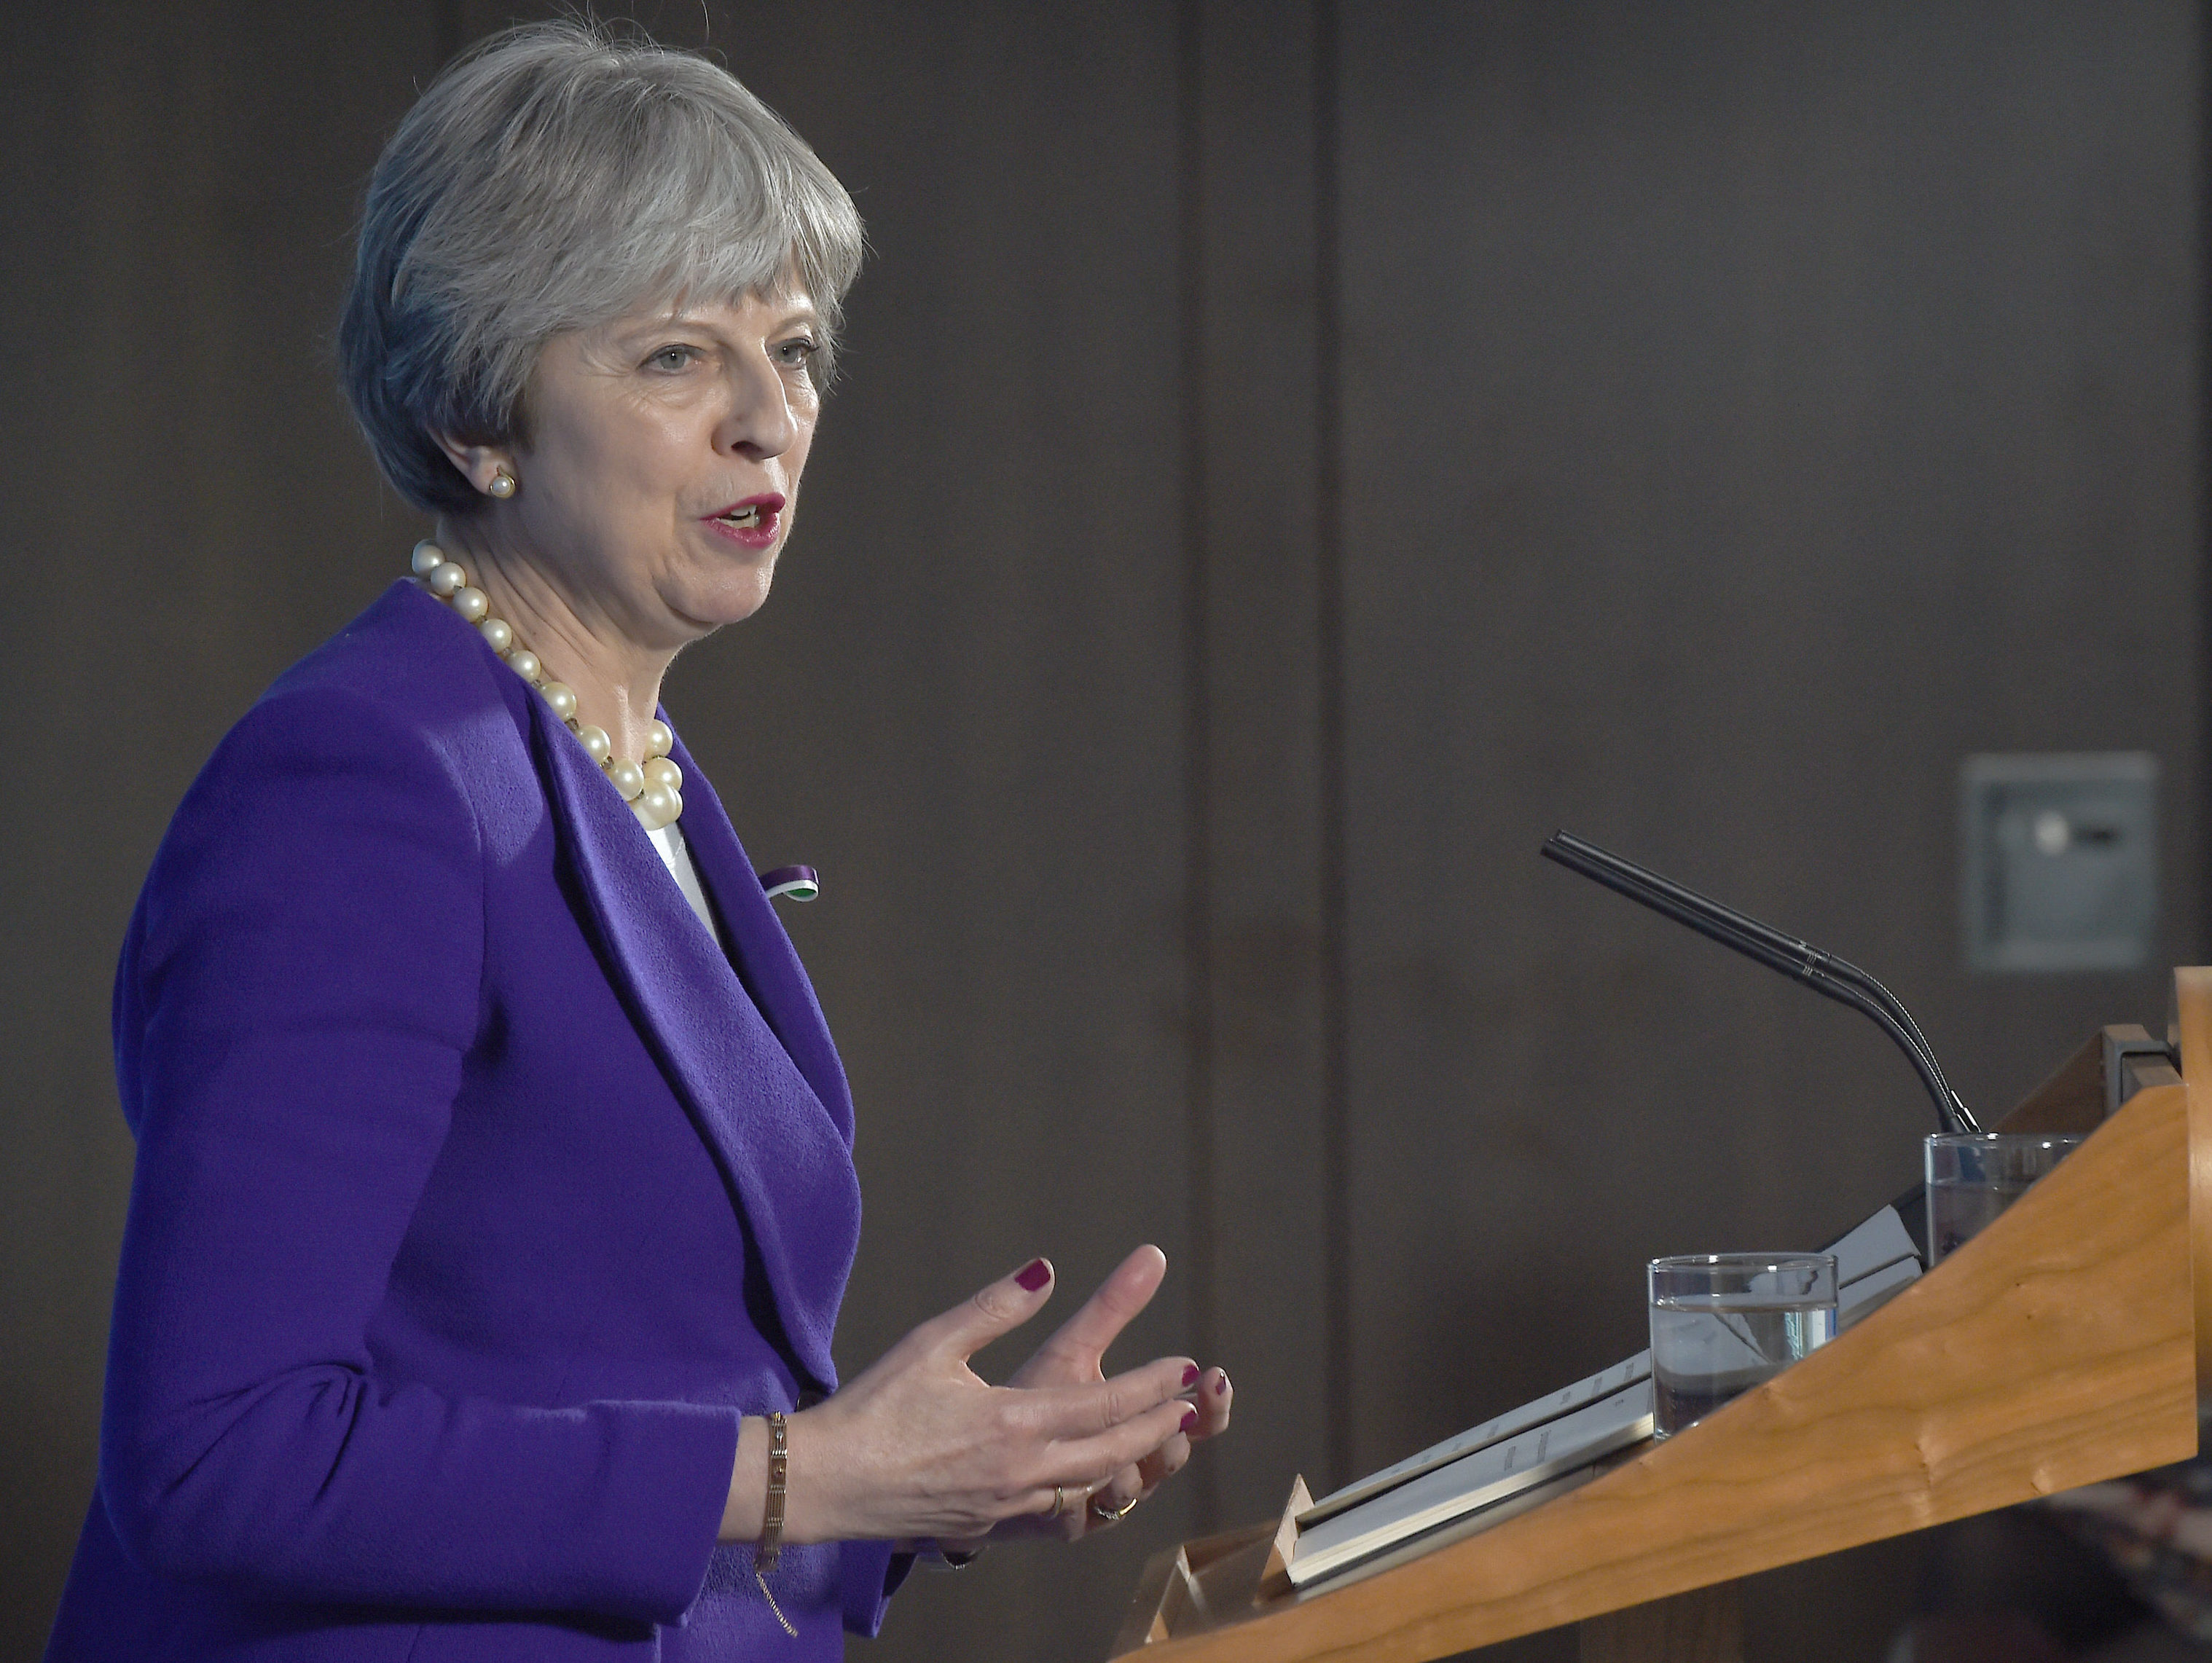 Theresa May tells aspiring female politicians to 'be yourself'